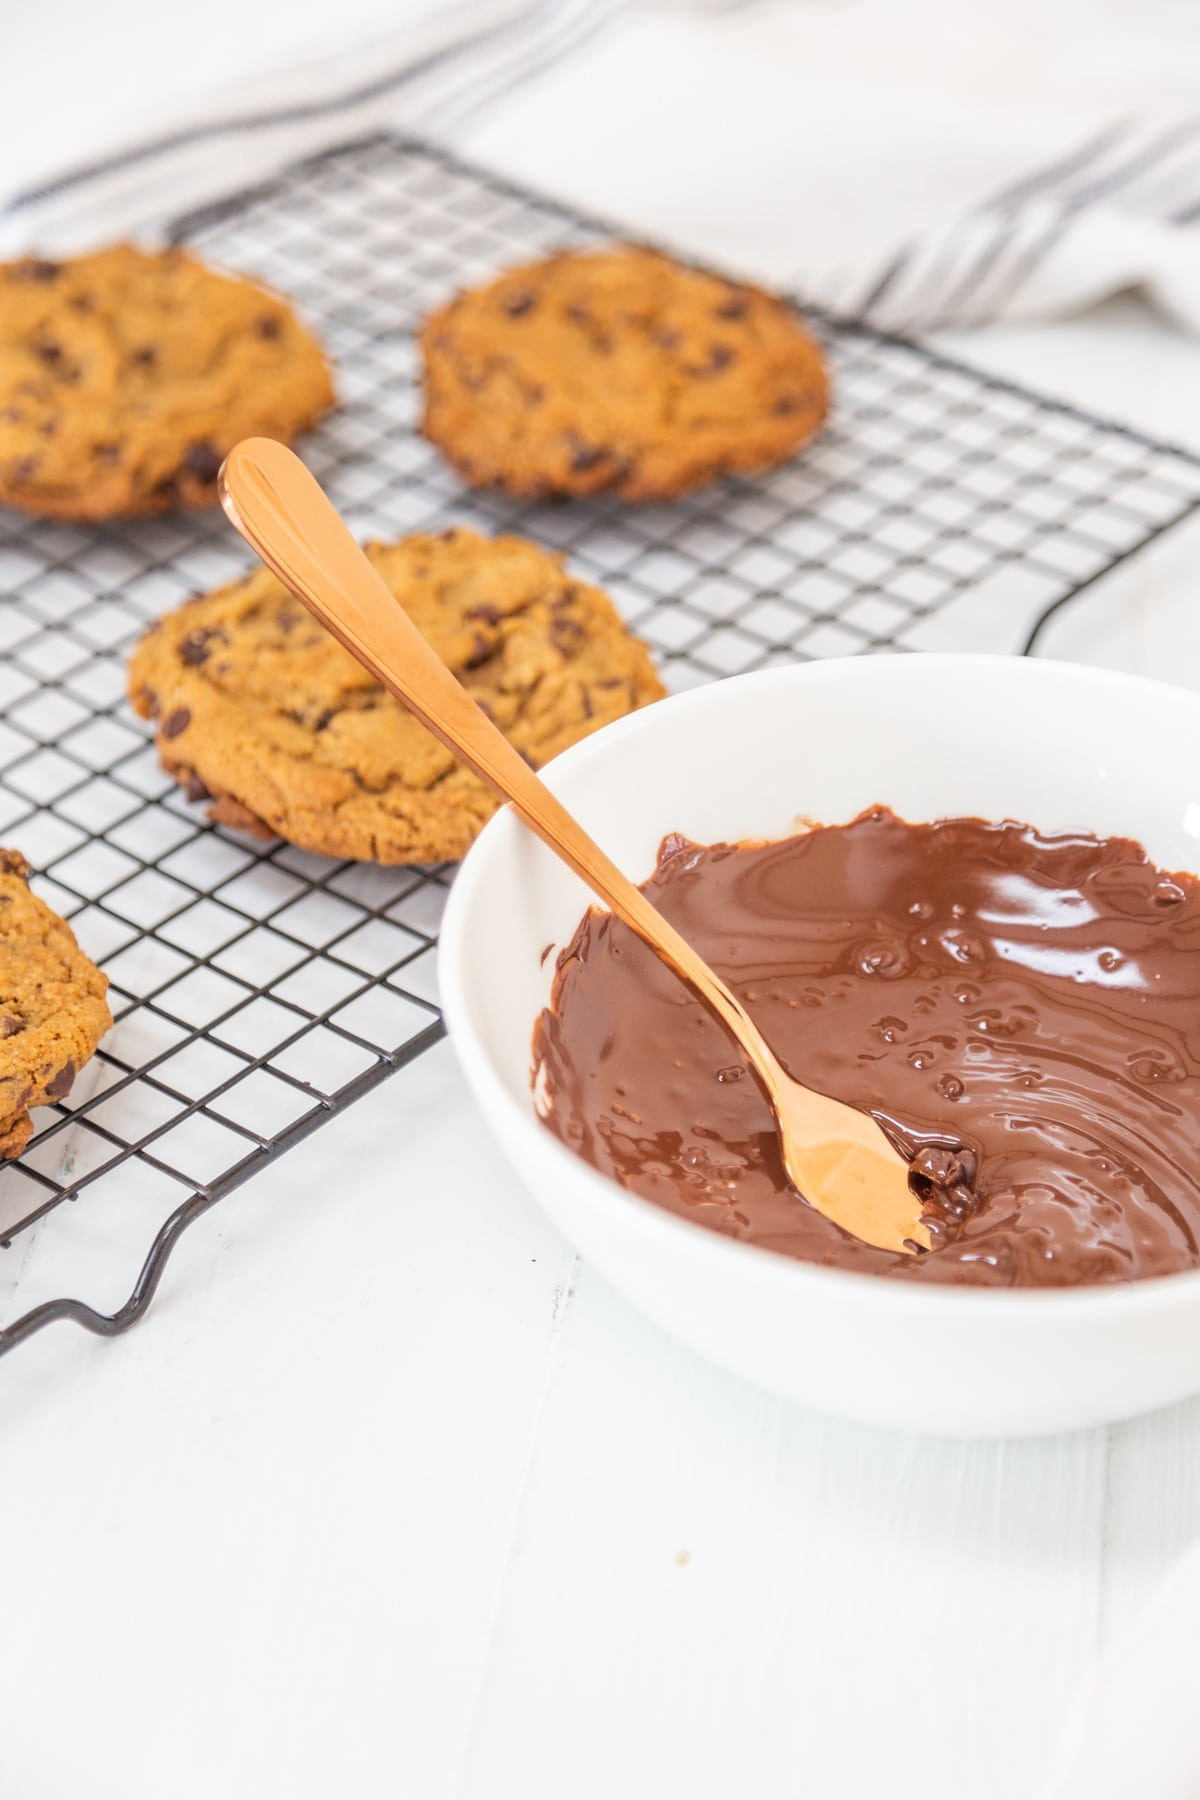 A white bowl of melted chocolate with a copper spoon next to a cooling rack with chocolate chip cookies.